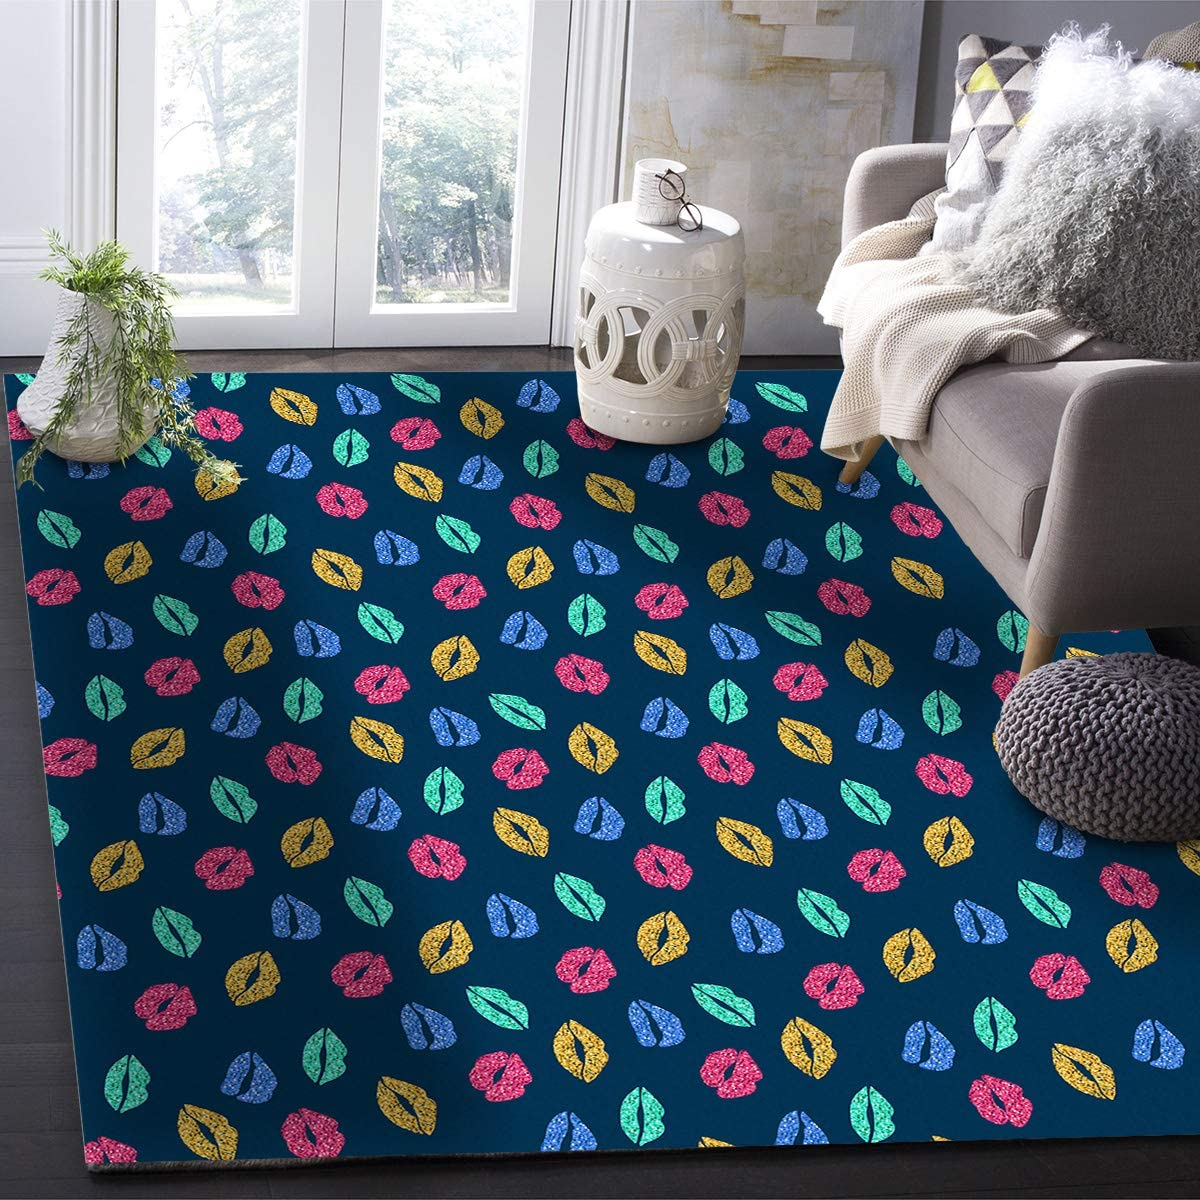 OUR WINGS Area Rug, Modern Contemporary Indoor/Outdoor Affordable Rugs for Living Room Bedroom Study Children Playroom Super Soft Carpet Floor Mat,Rectangular - Sexy Lip Print 4 Feet by 6 Feet